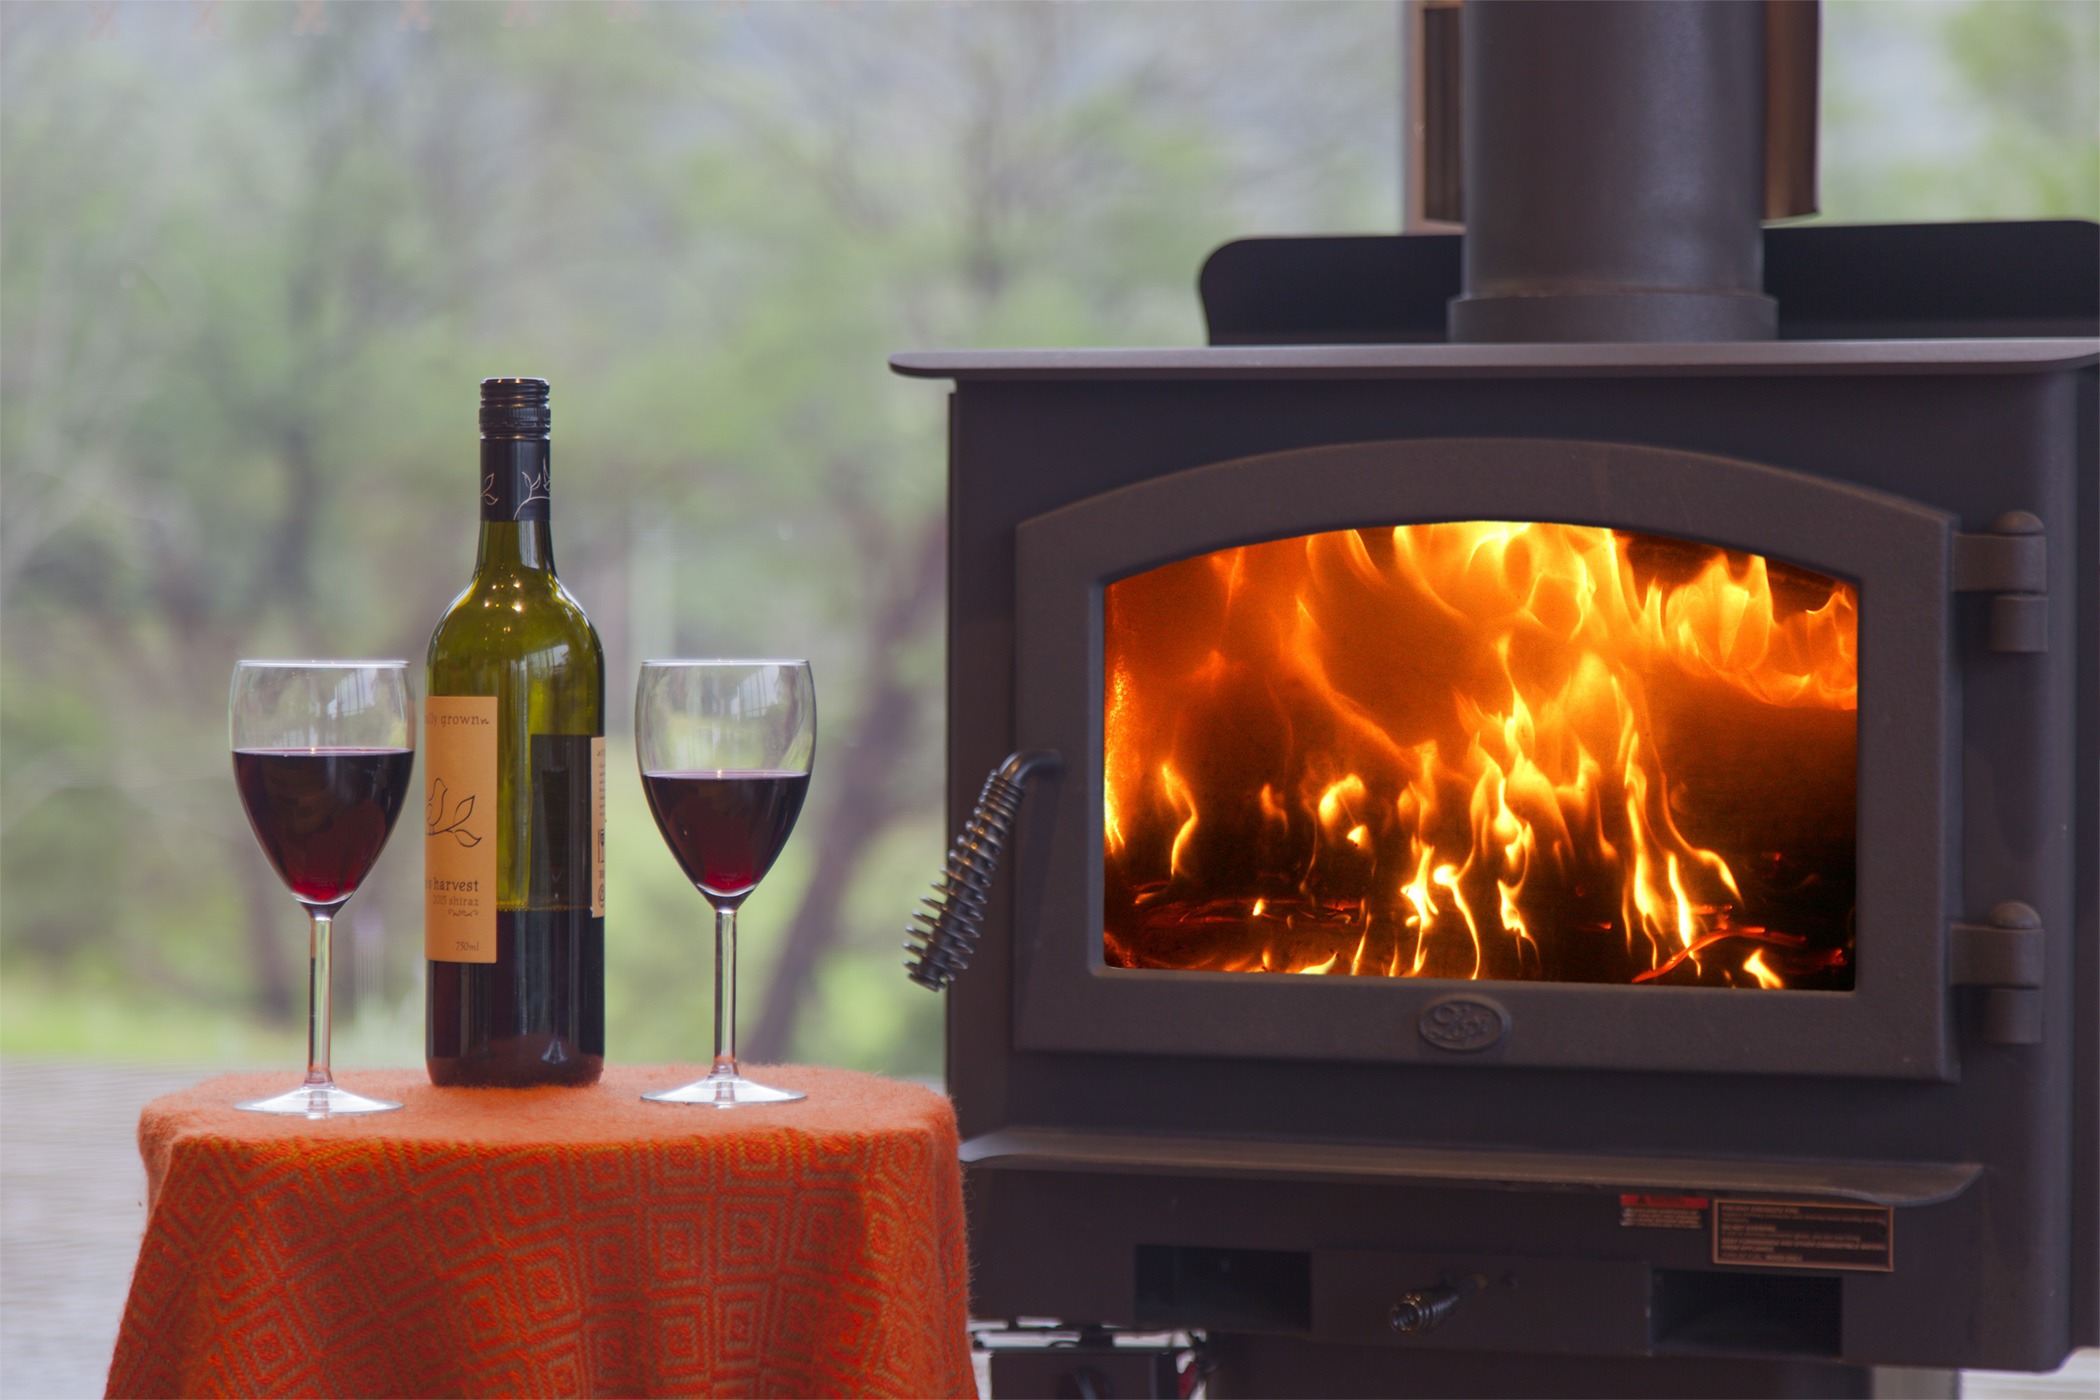 Wood heating for cosy winter nights